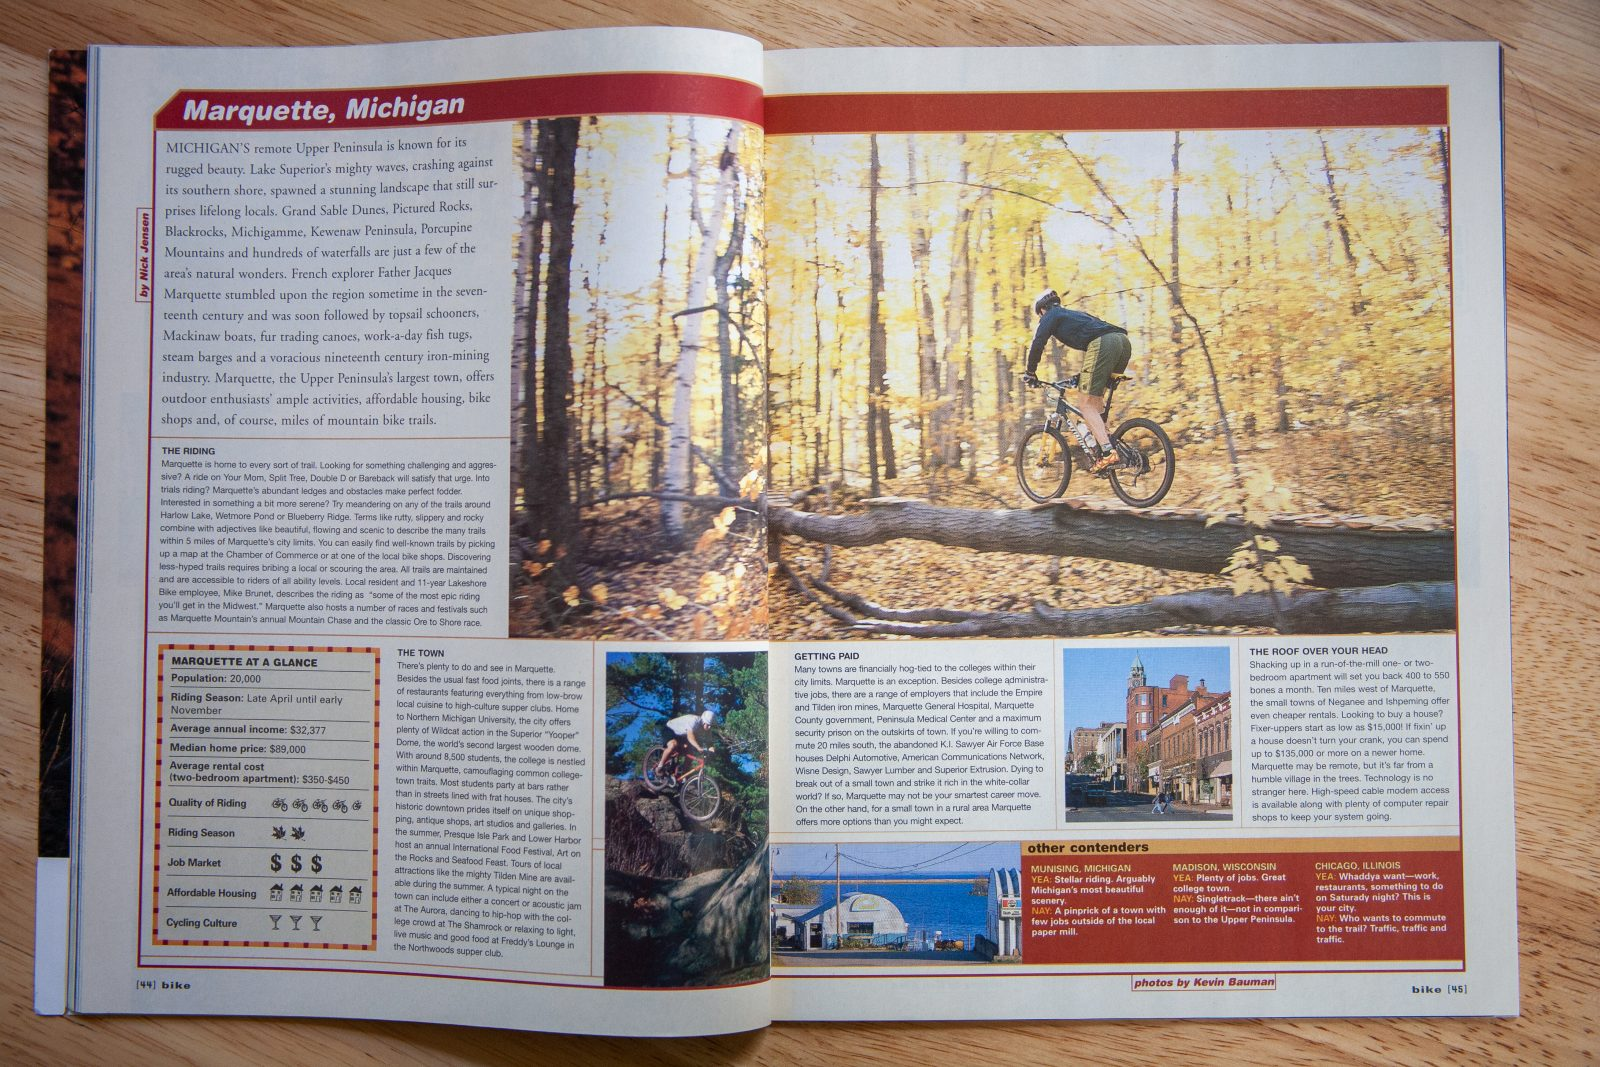 Bike Magazine - Marquette, Michigan